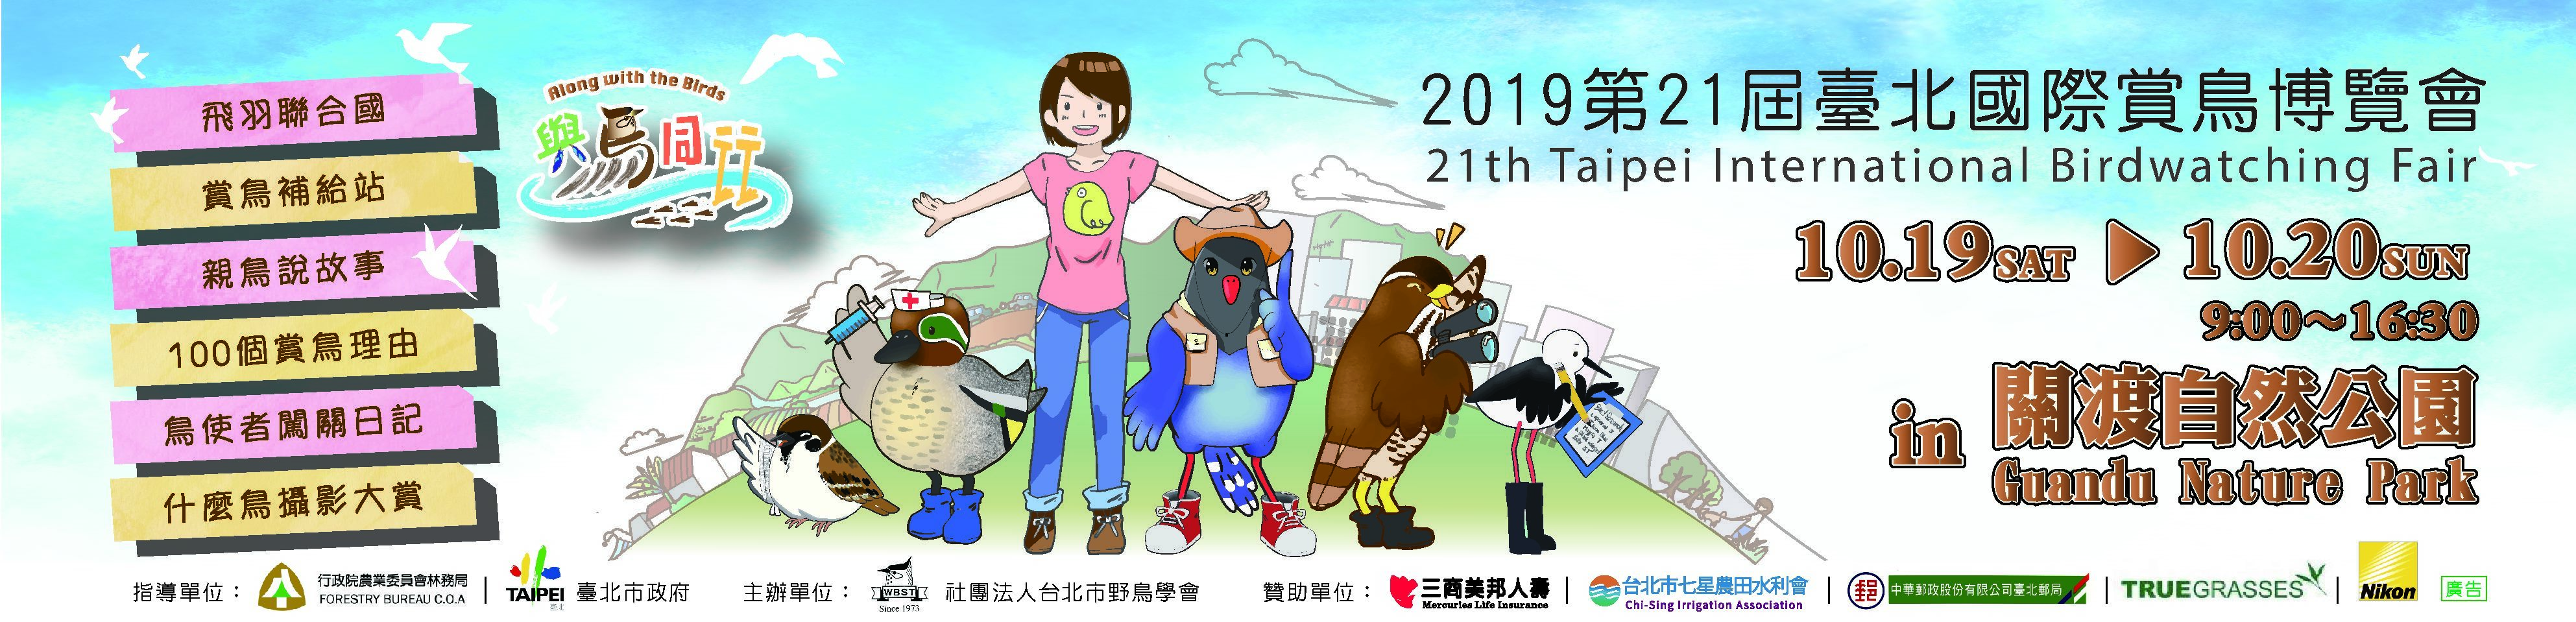 21st Taipei International Bird Watching Fair